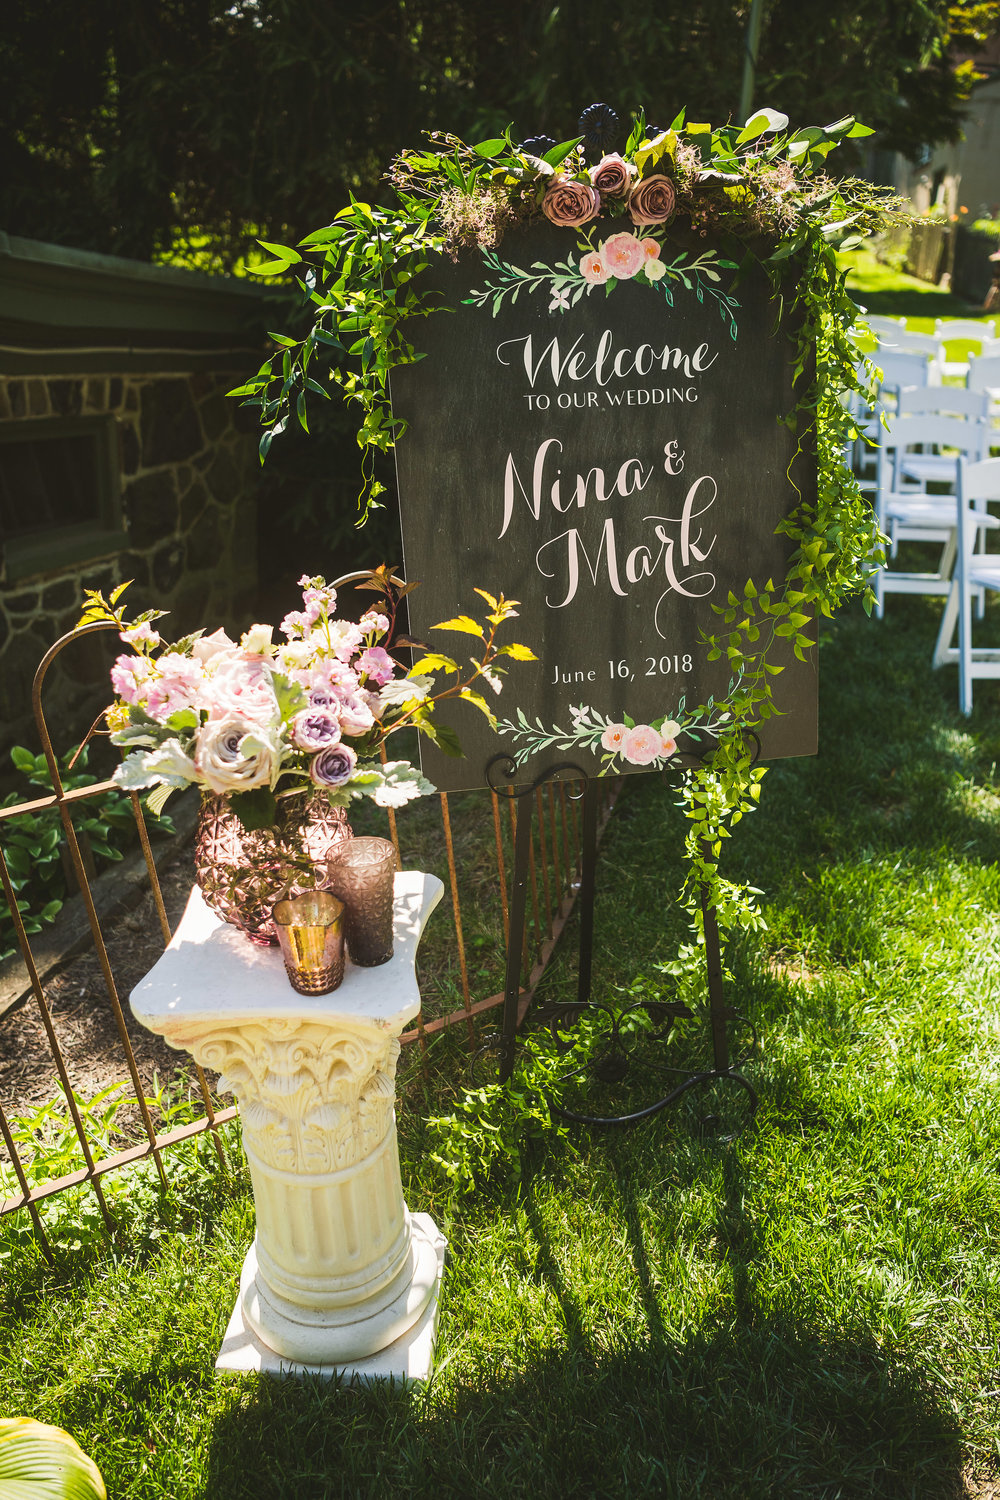 PA Wedding, Sage Farm House, Outdoor Ceremony, Ceremony sign, Welcome sign, A Garden Party, Nikki & Chip Photography